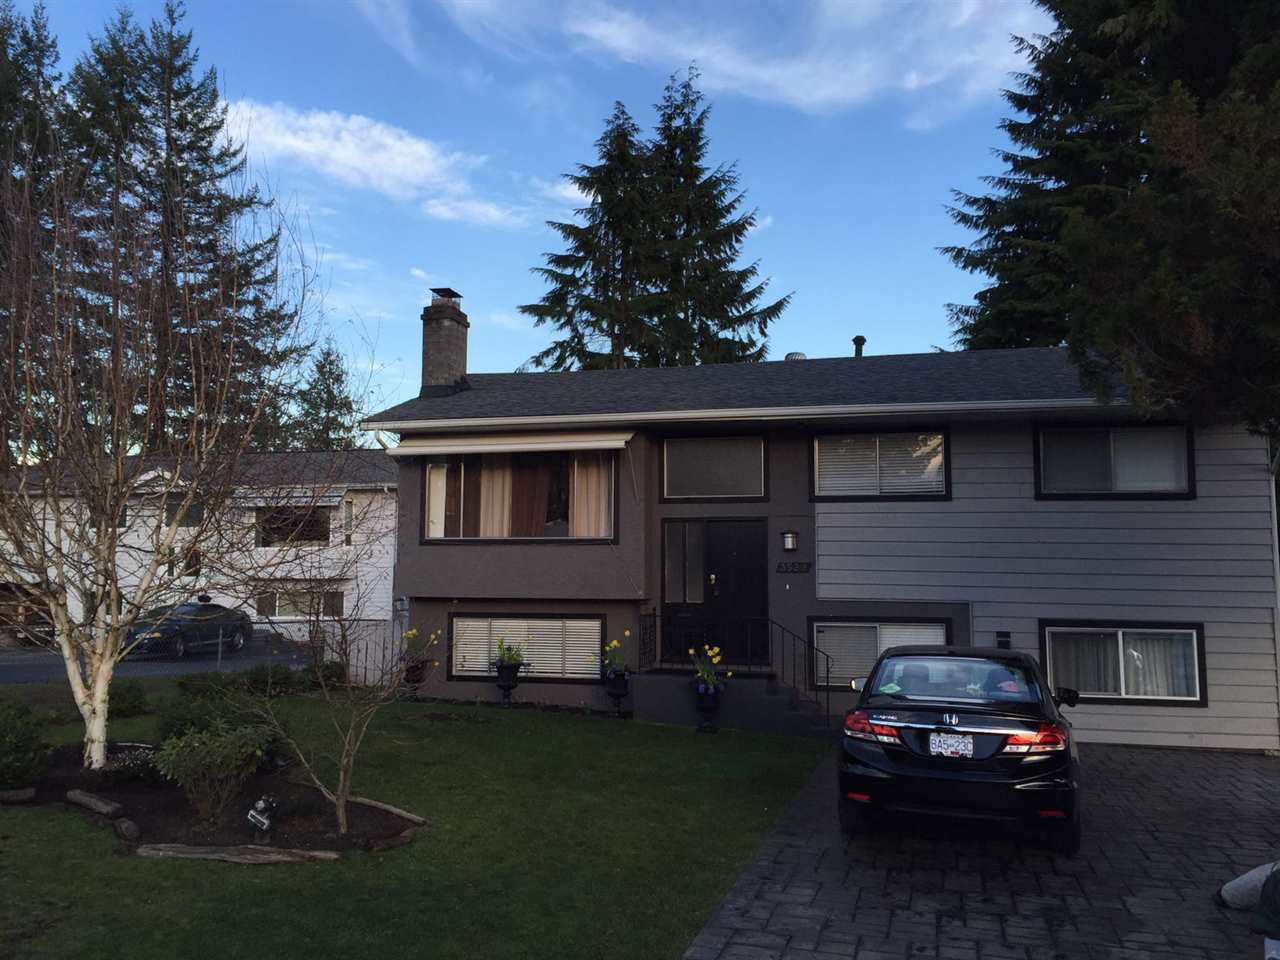 Main Photo: 3522 FLINT Street in Port Coquitlam: Glenwood PQ House for sale : MLS®# R2033048